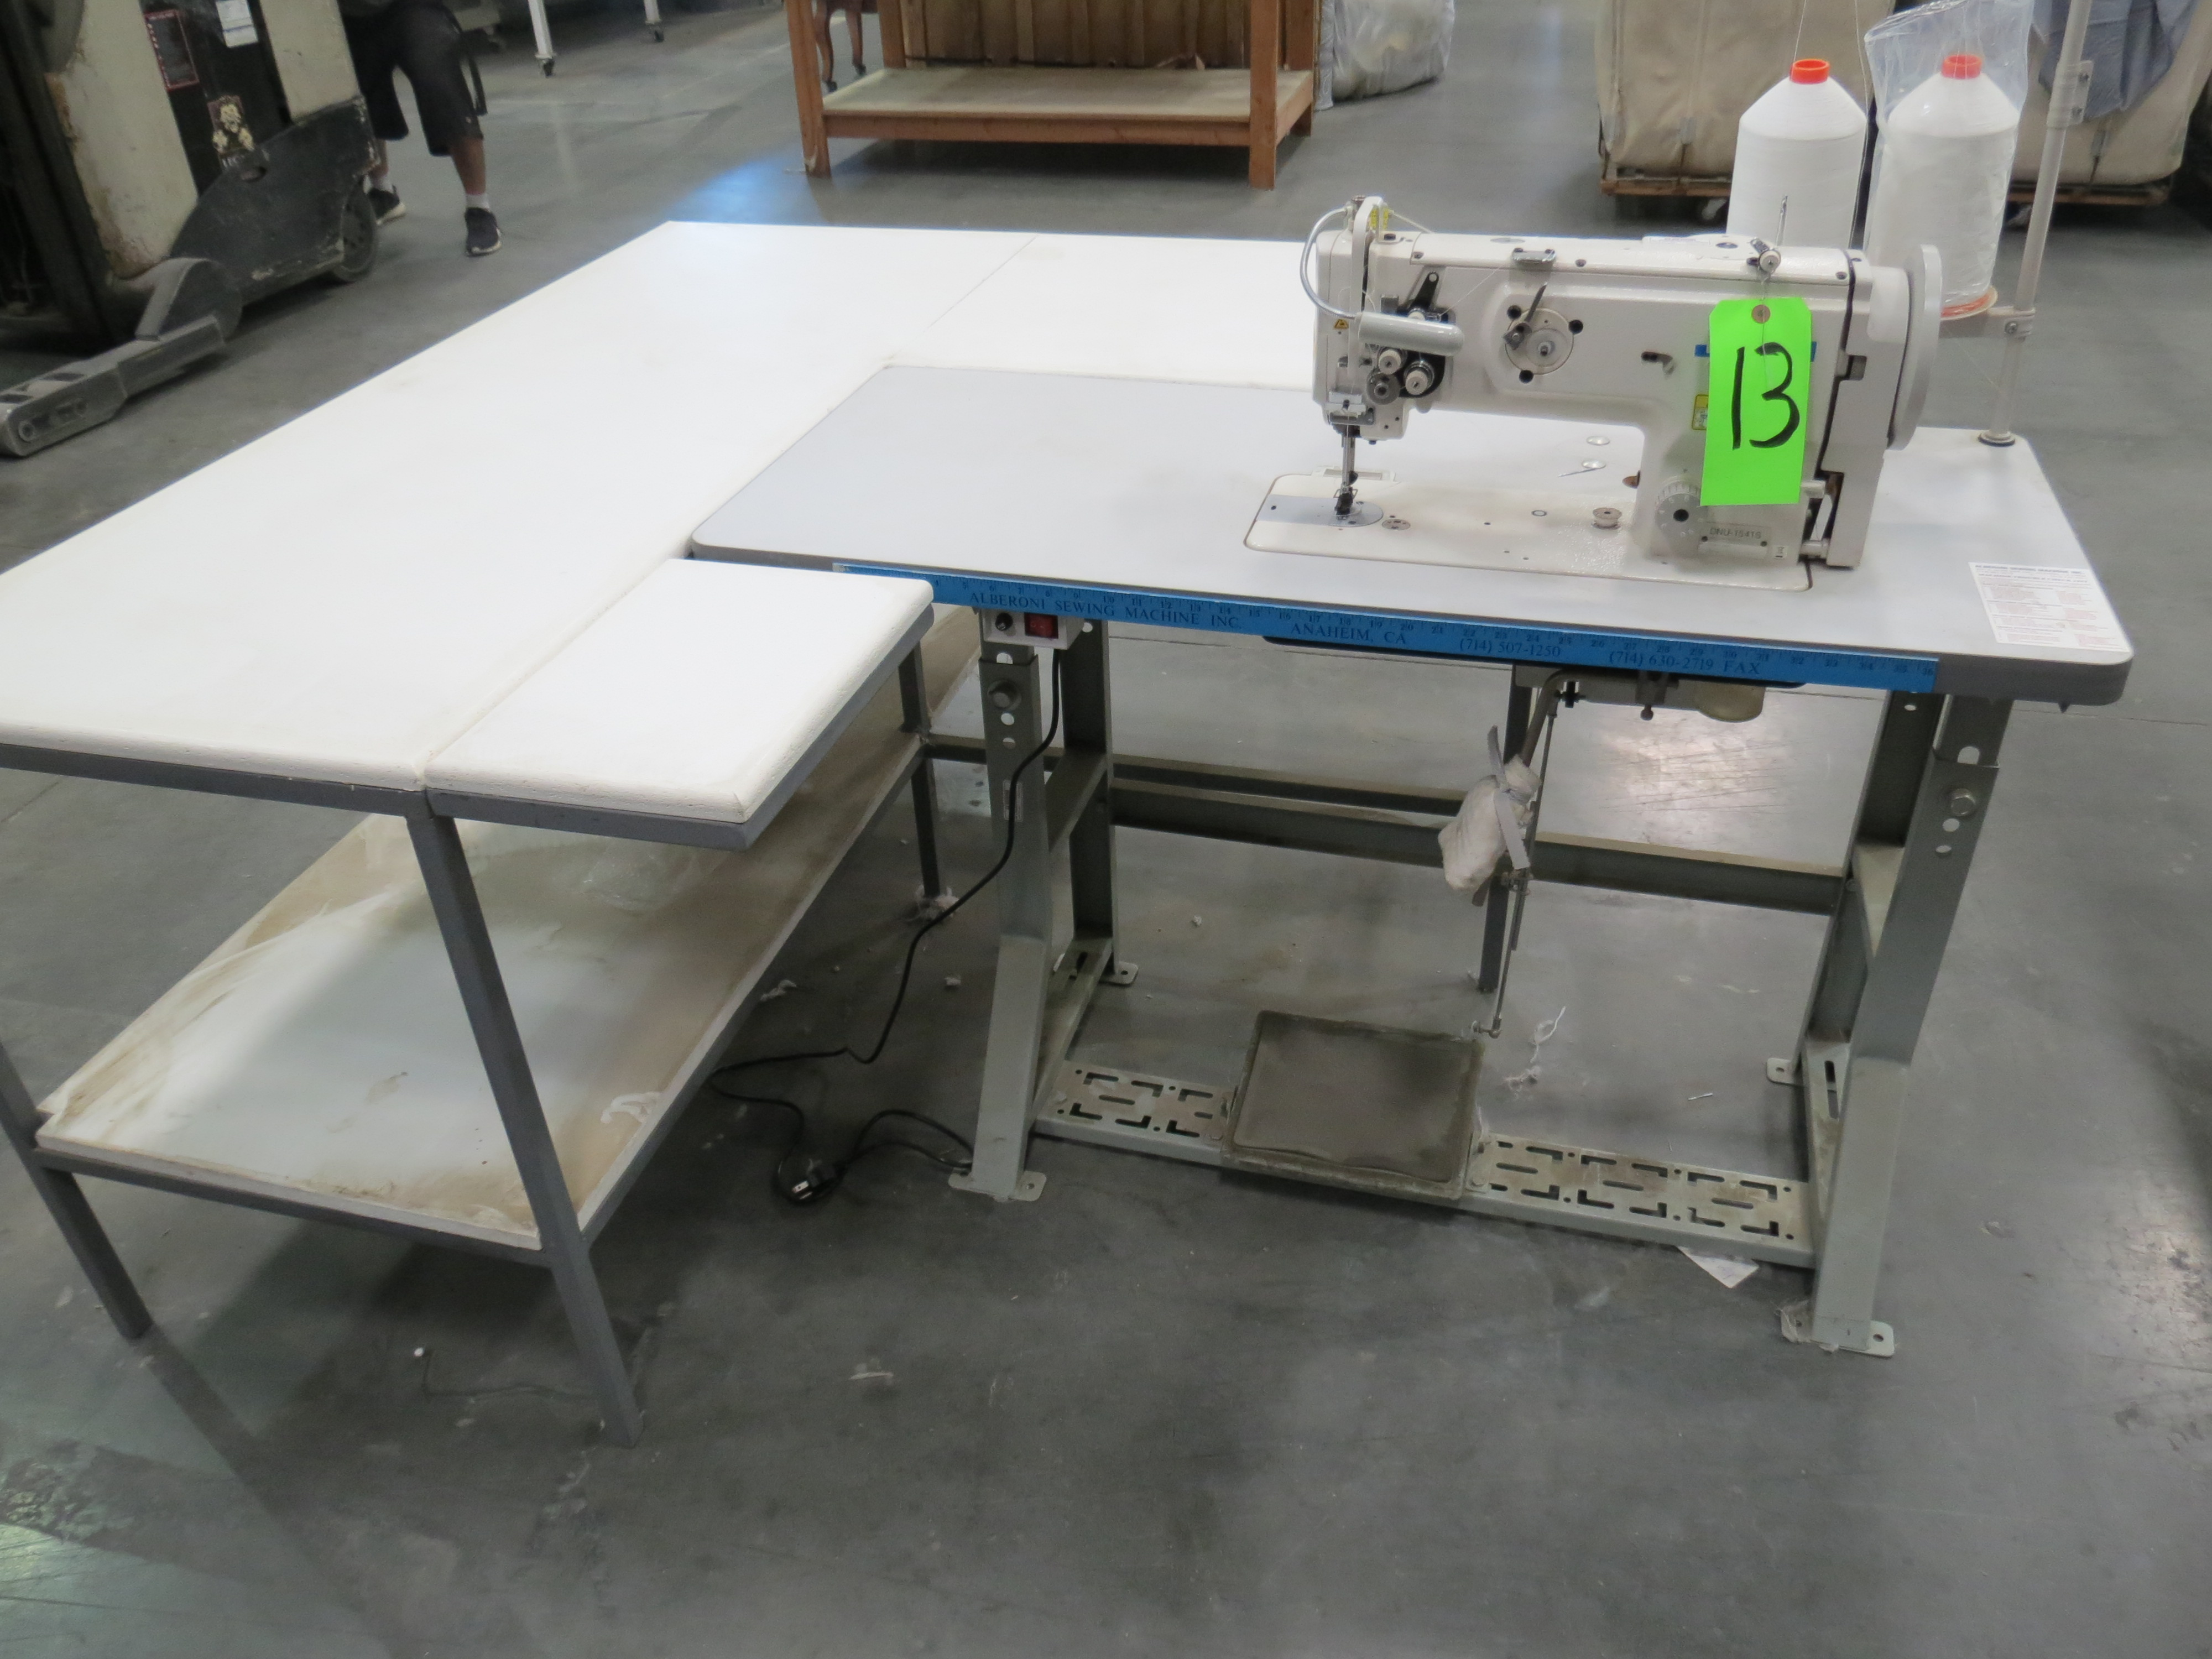 Juki DNU-1541SSingle Needle Sewing Machine, 110V, SN:3D8KF01172 with Table